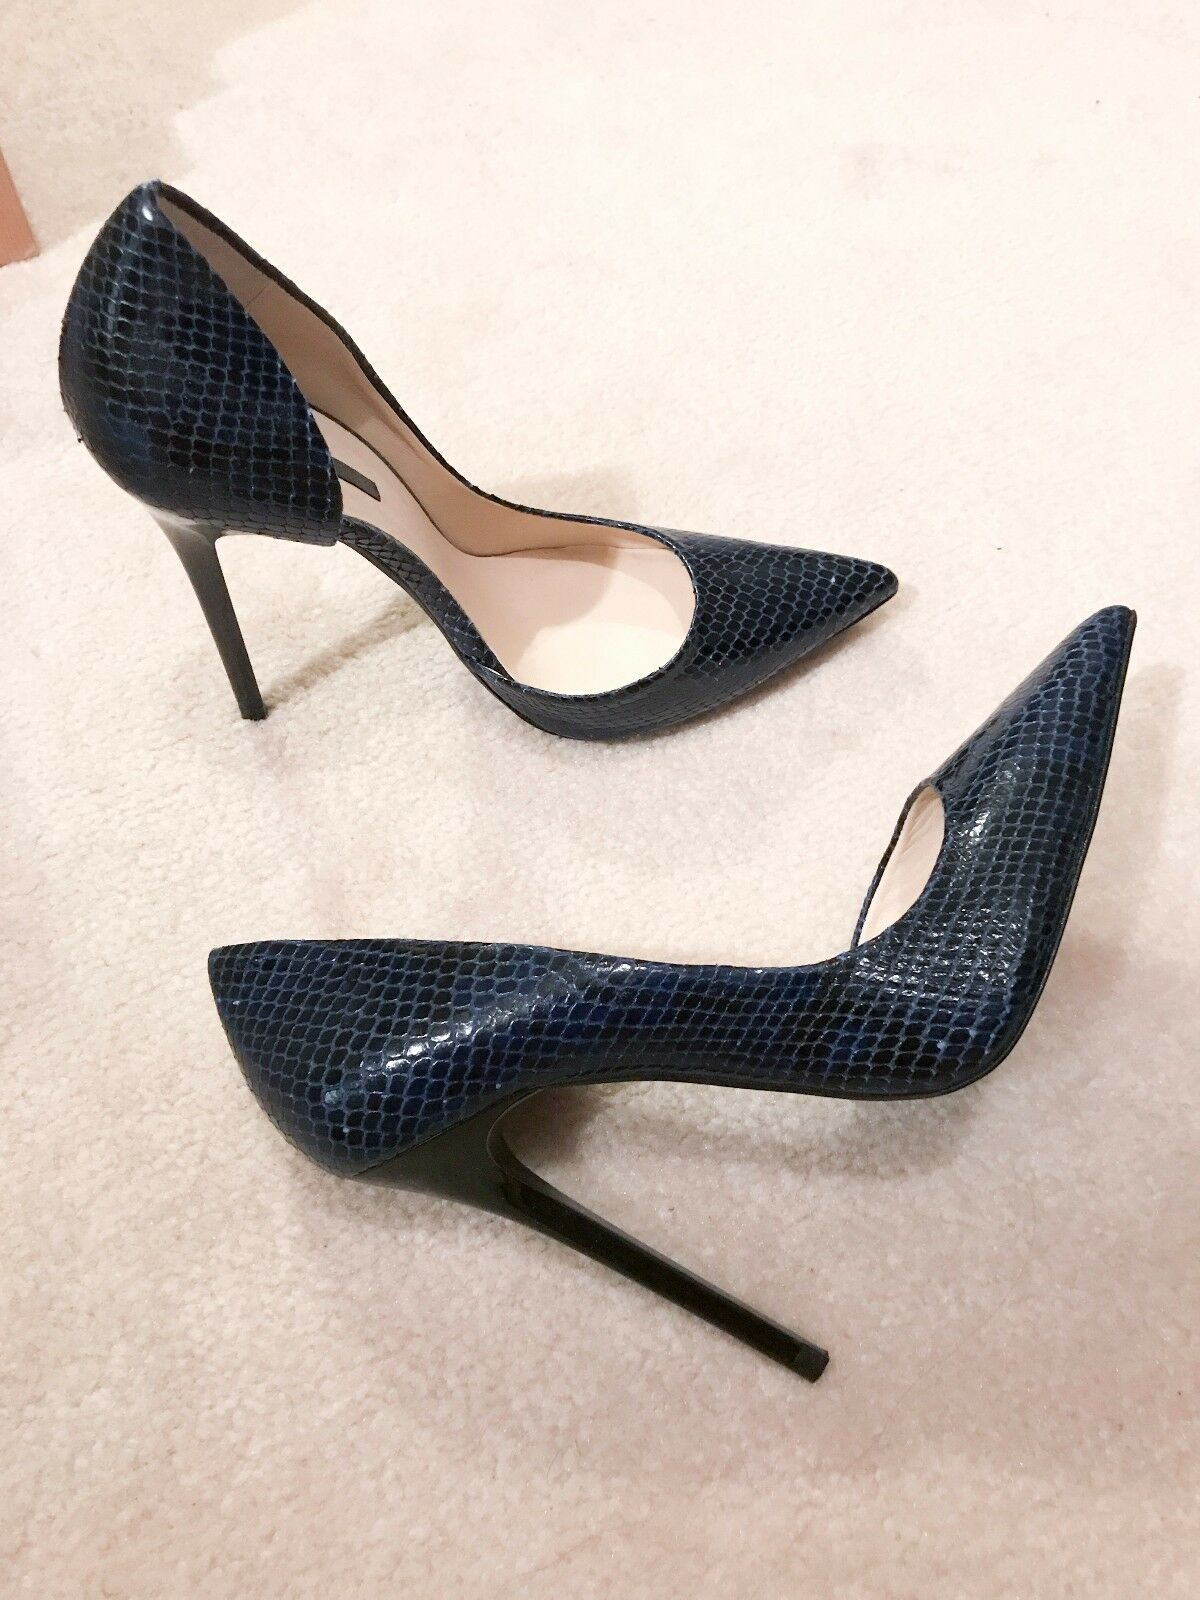 Zara New Navy Snakeskin Leather D'Orsay High Heel Asymmetrical Court Pumps 40